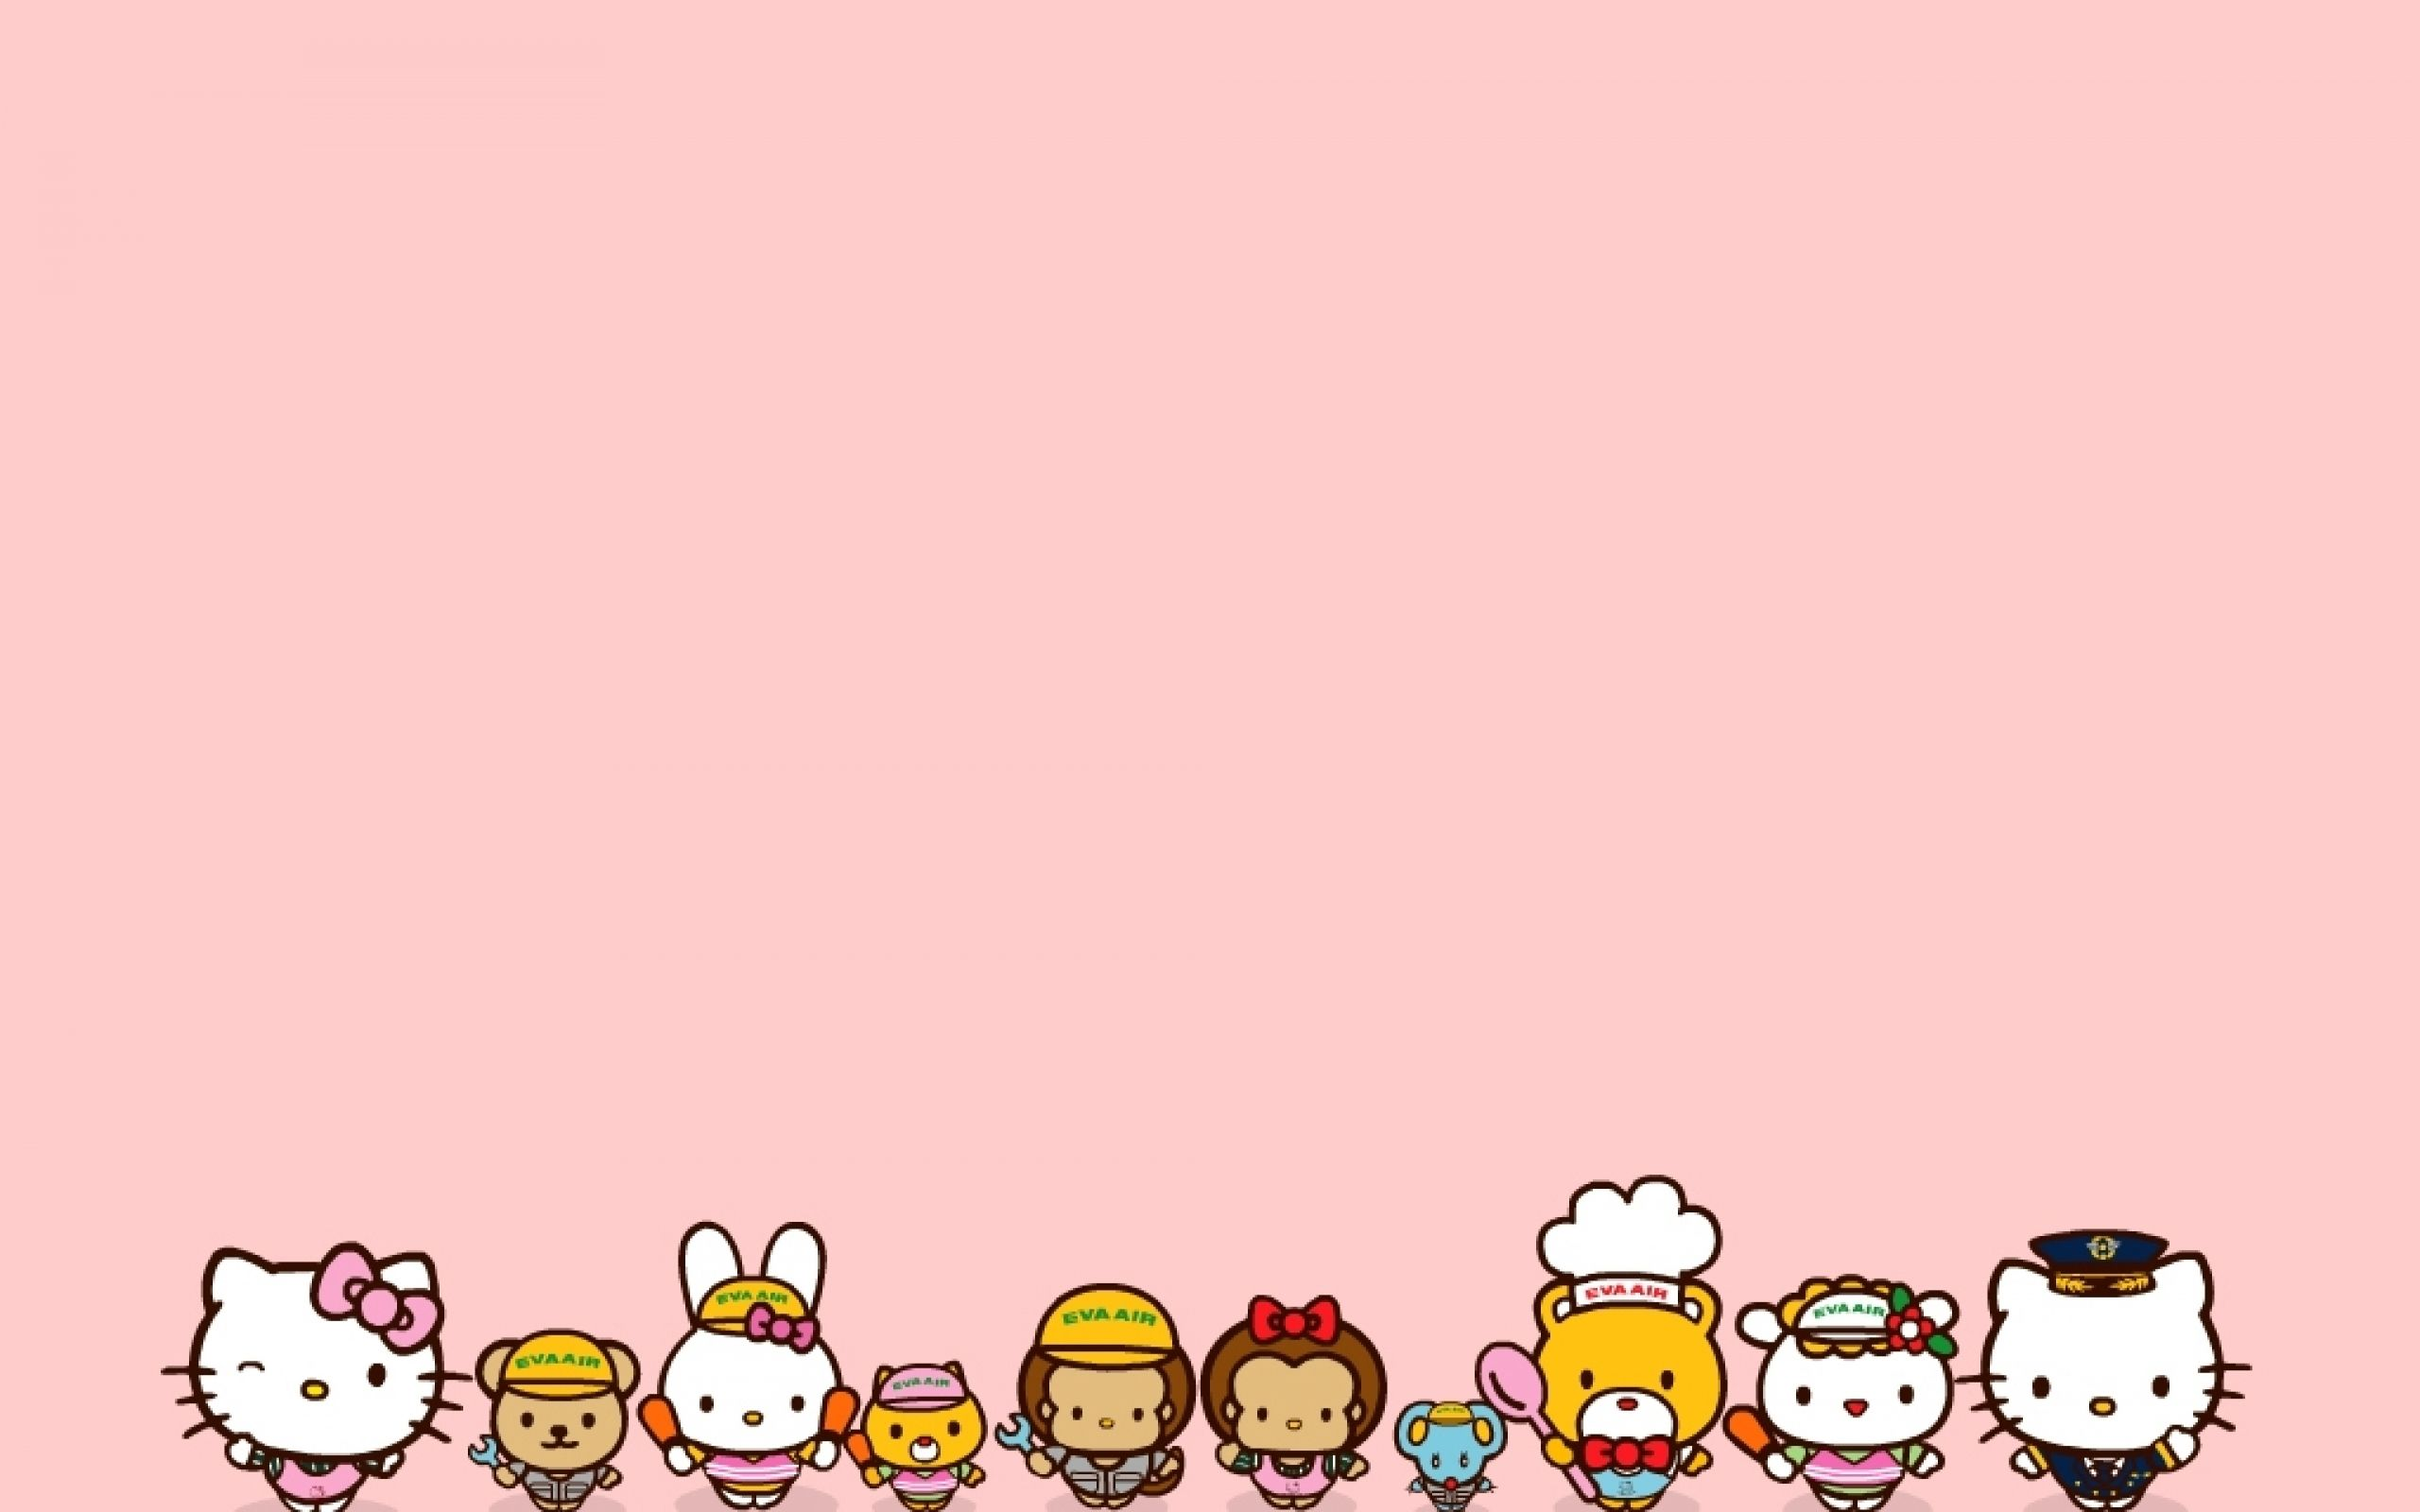 42 Hello Kitty Desktop Background On Wallpapersafari With The Most Brilliant Hello Kitty Backgrou In 2020 Hello Kitty Wallpaper Hello Kitty Backgrounds Kitty Wallpaper